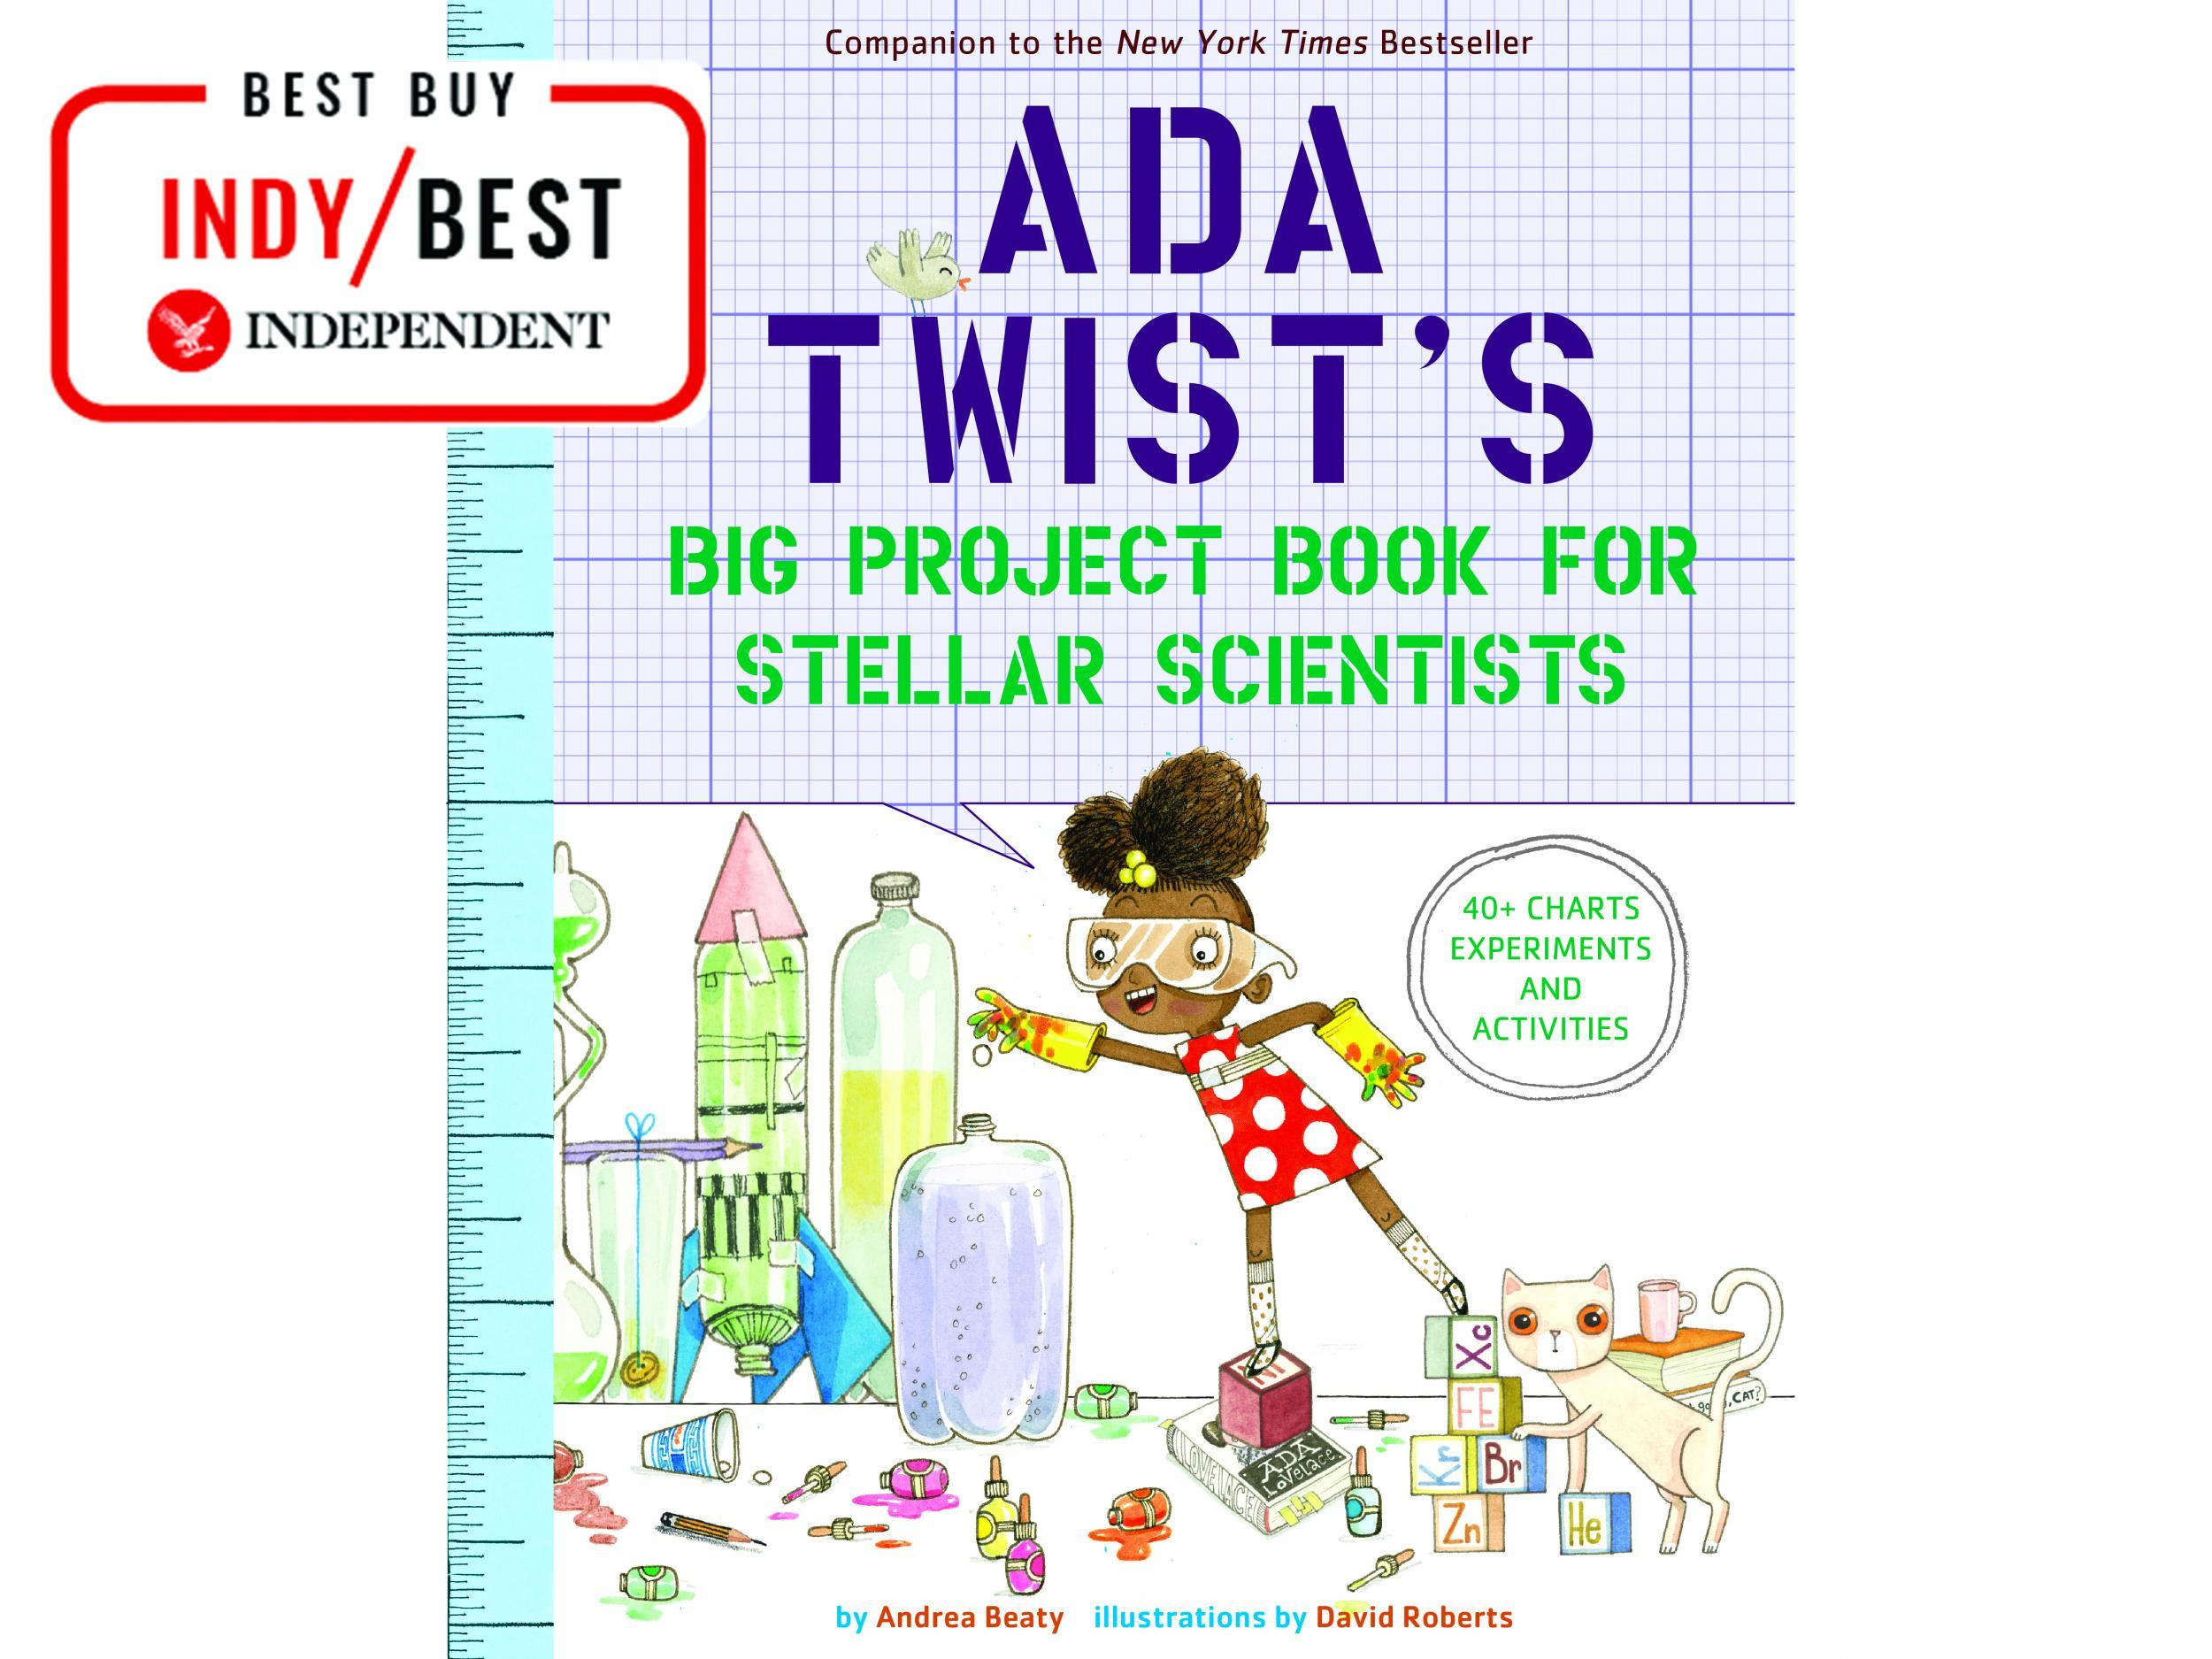 Best kids' activity book that is fun and educational